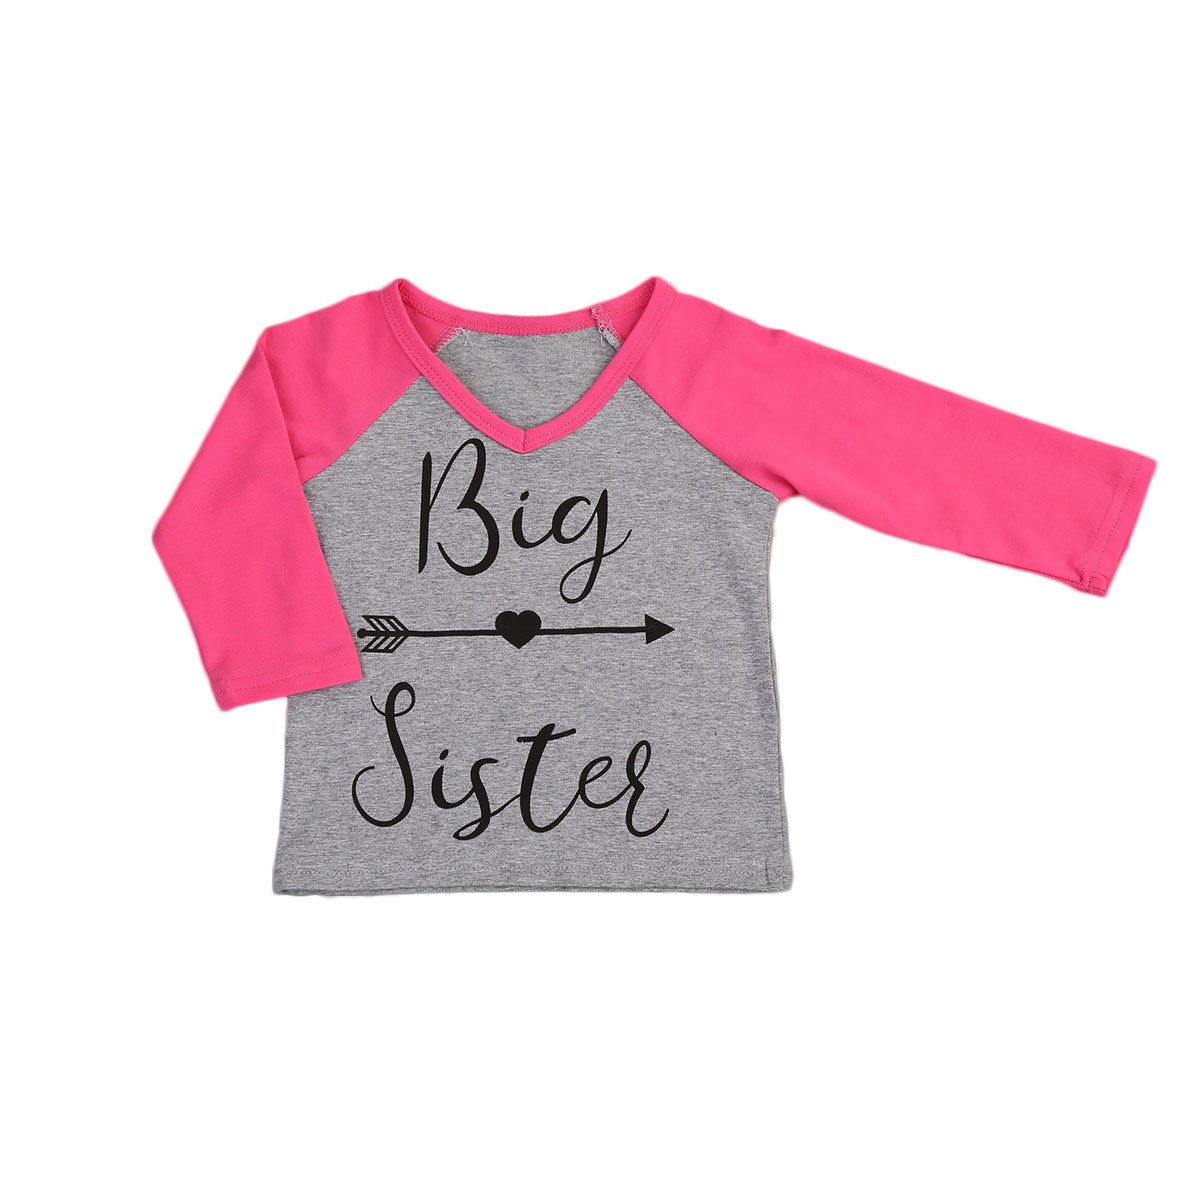 Moore Big Little Sister Toddler Baby Girl Long Sleeve T-Shirt Tops